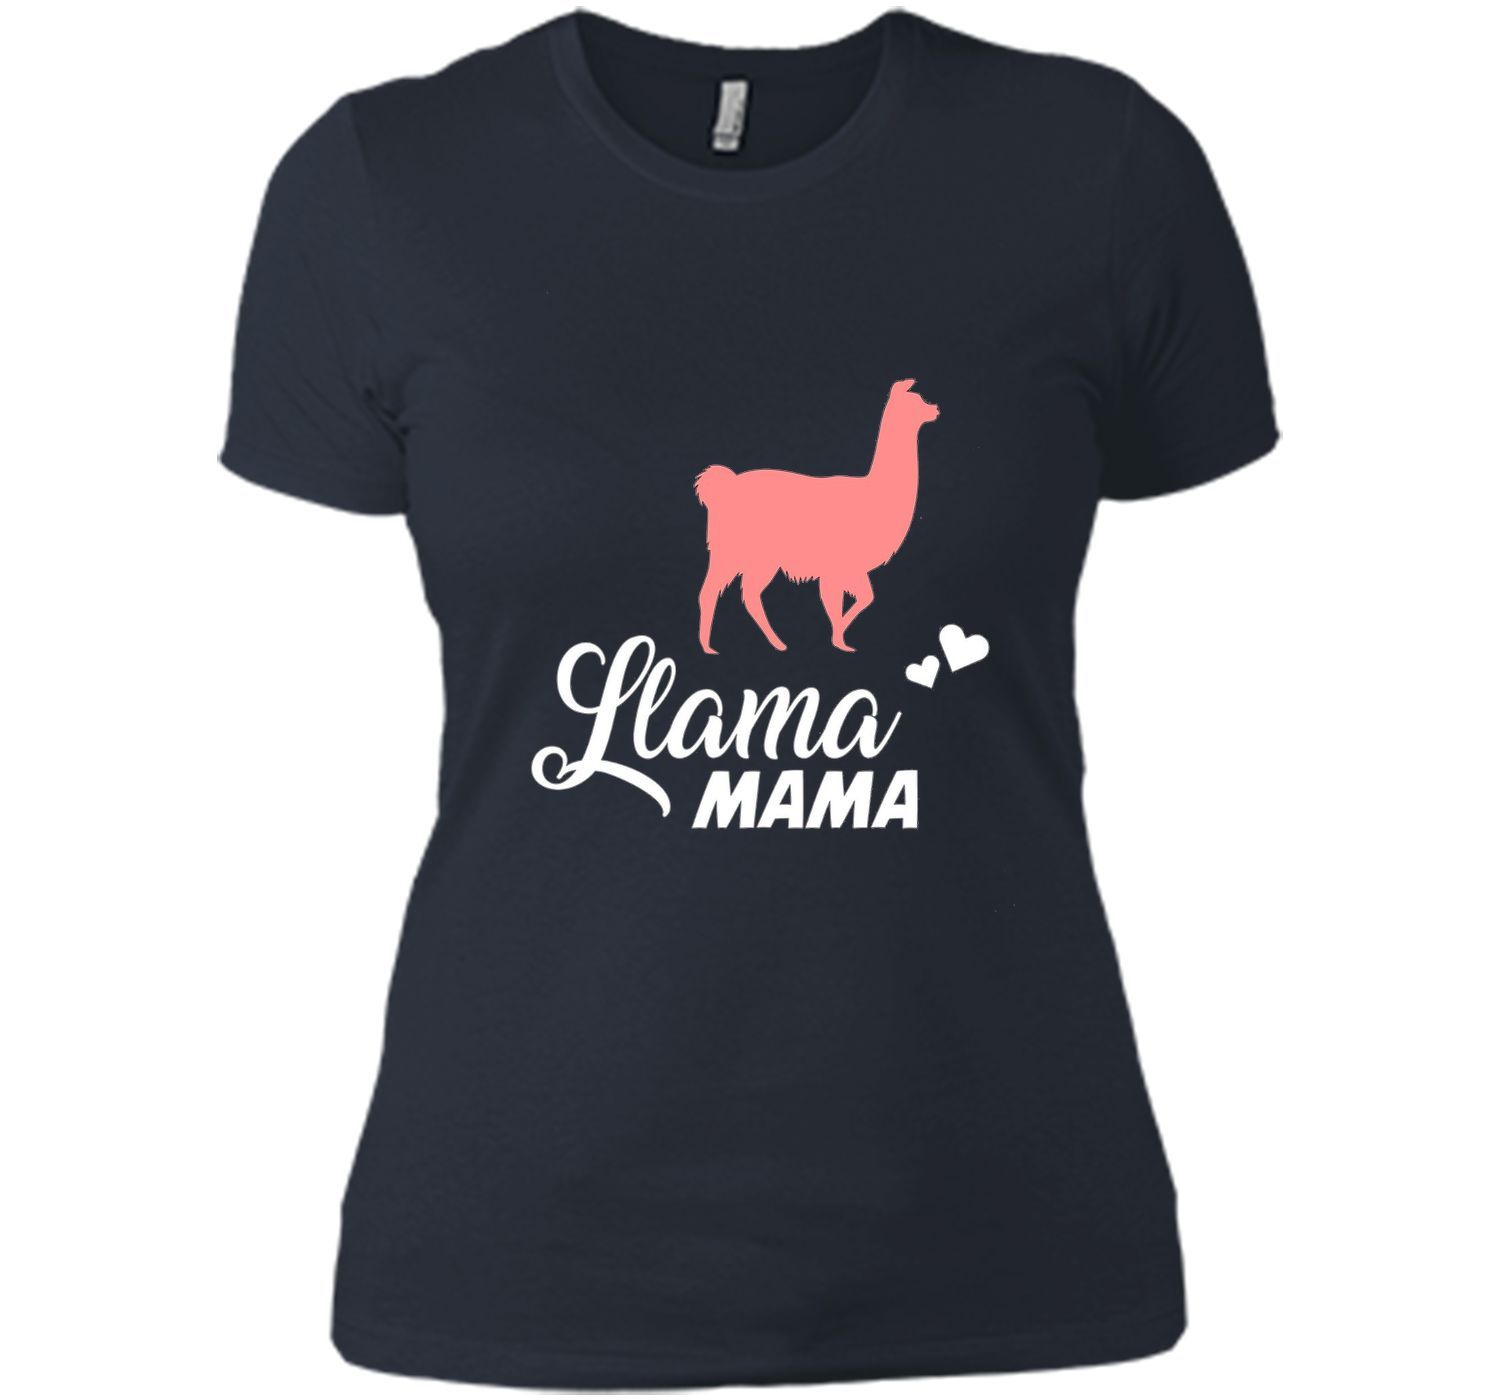 FUNNY LLAMA MAMA T-SHIRT Pet Farm Animal Lover Gift cool shirt ...